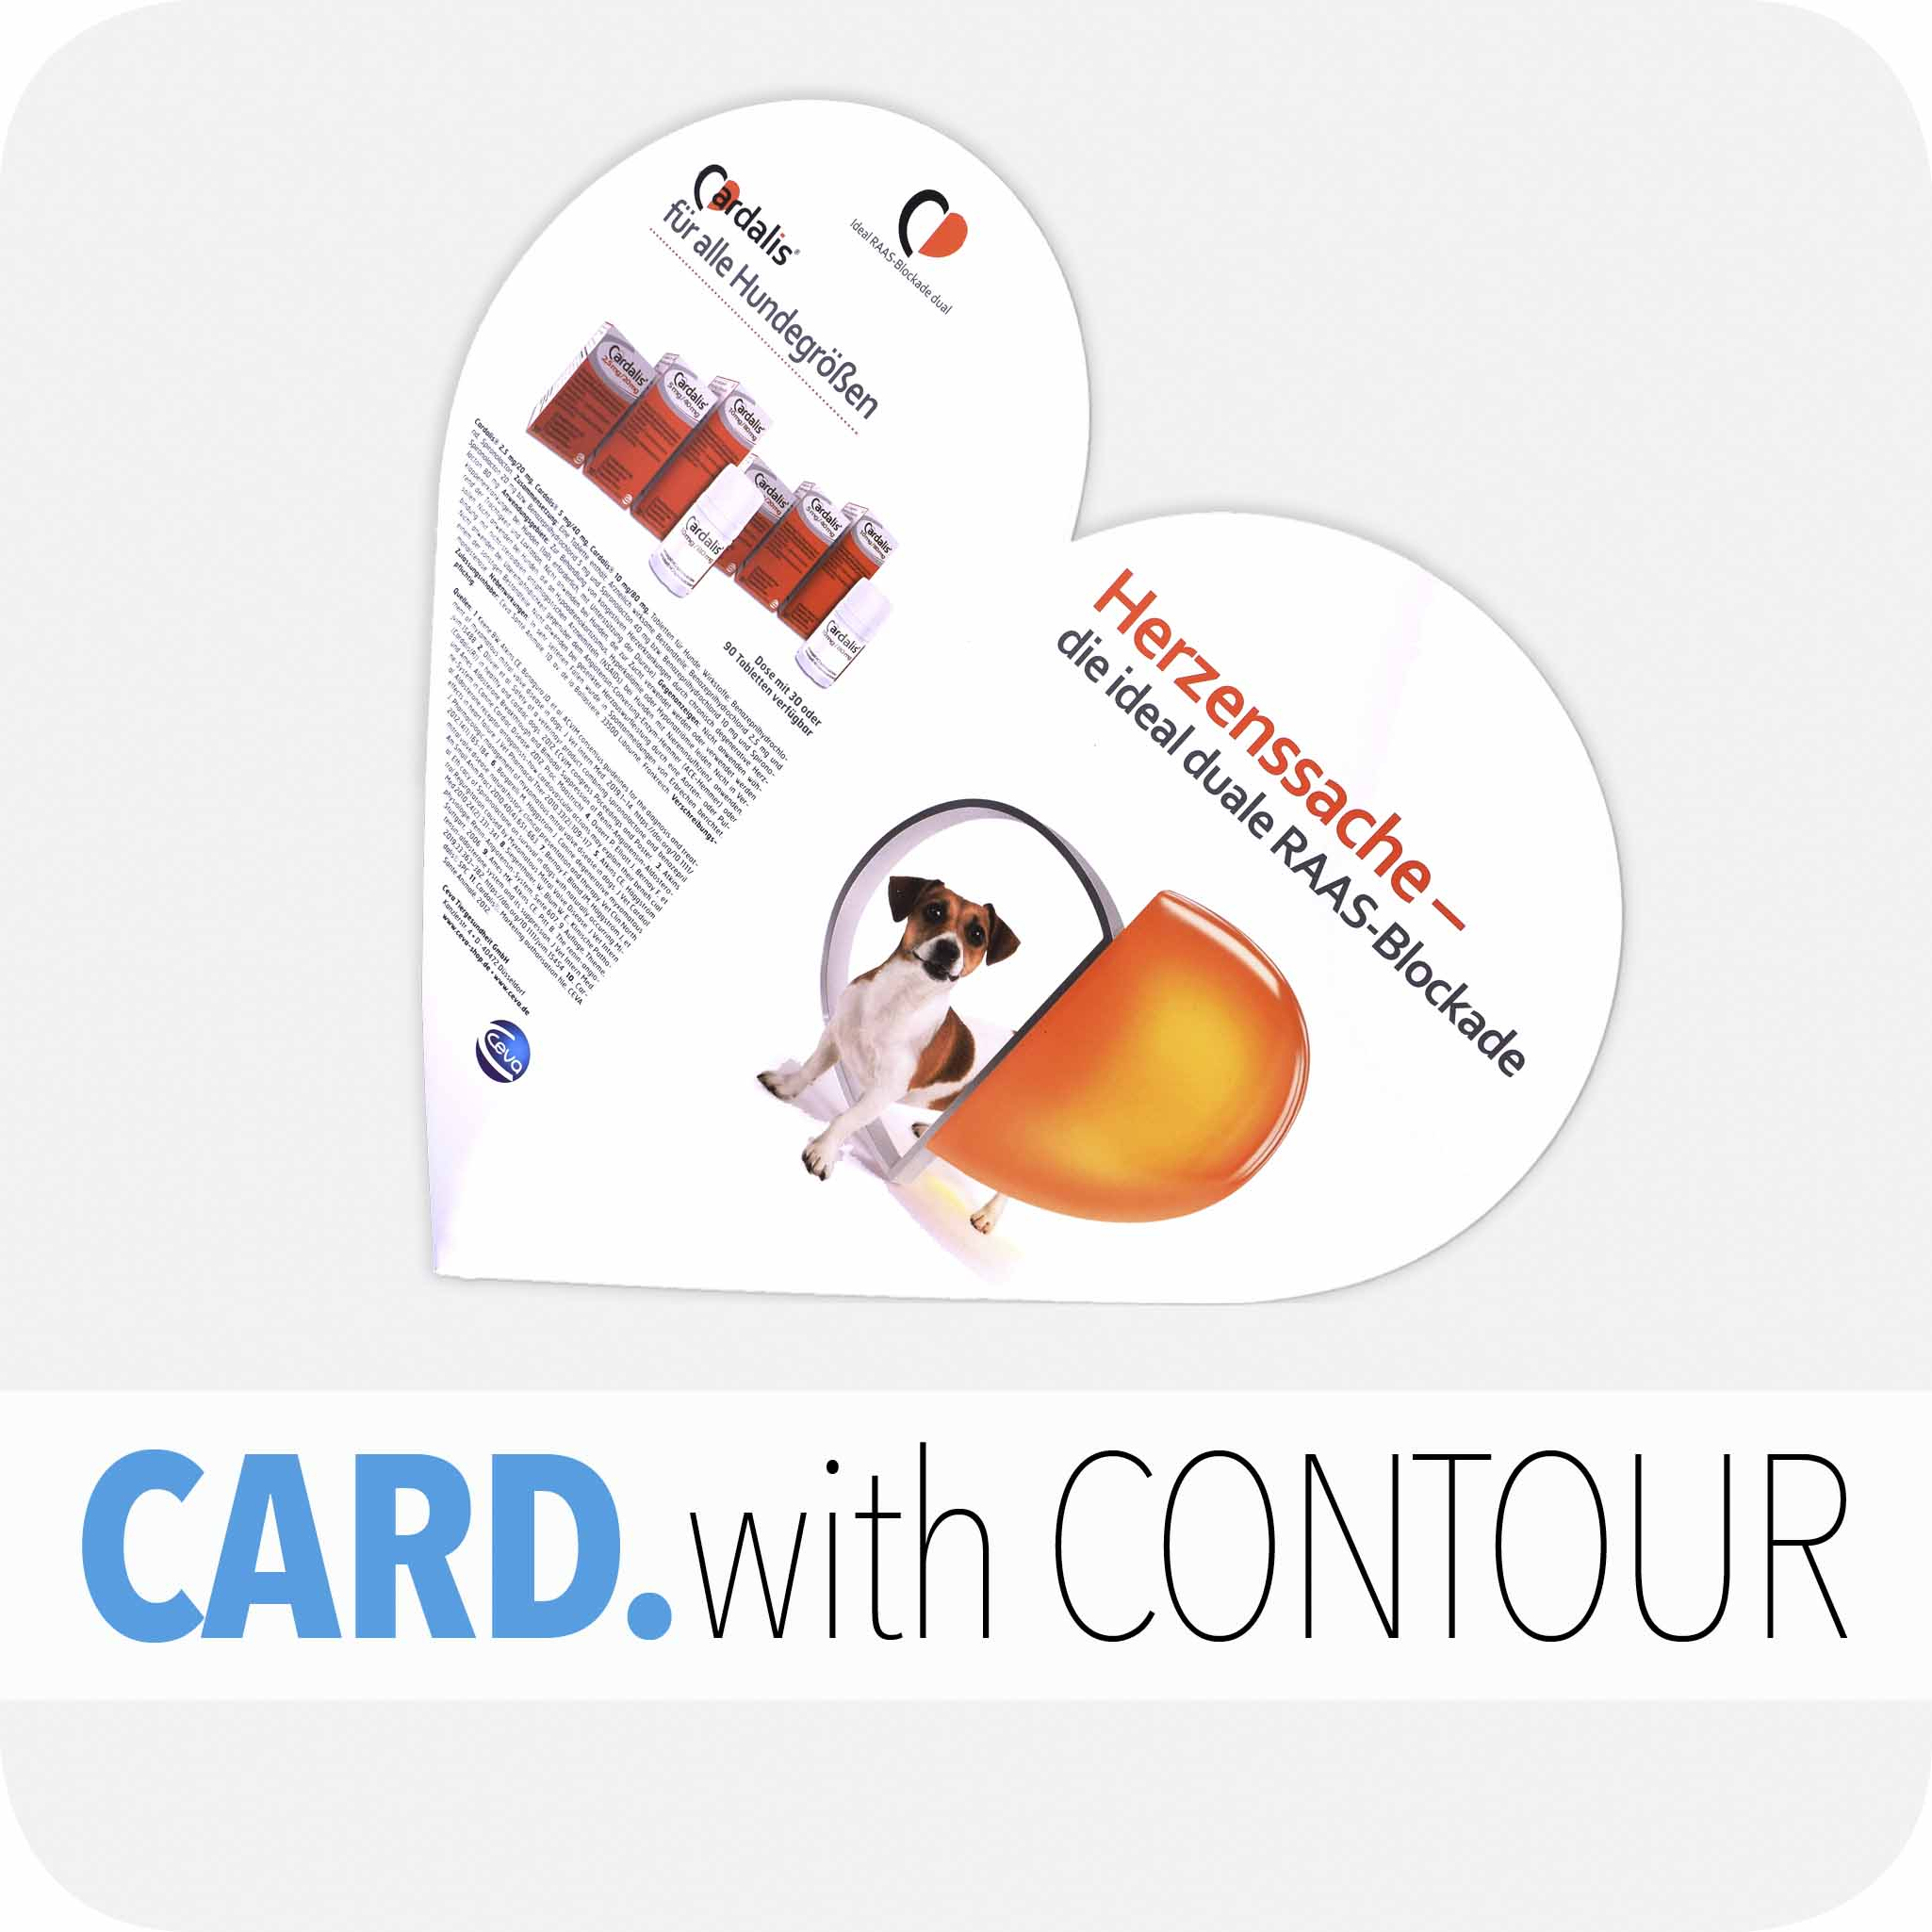 Card with contour